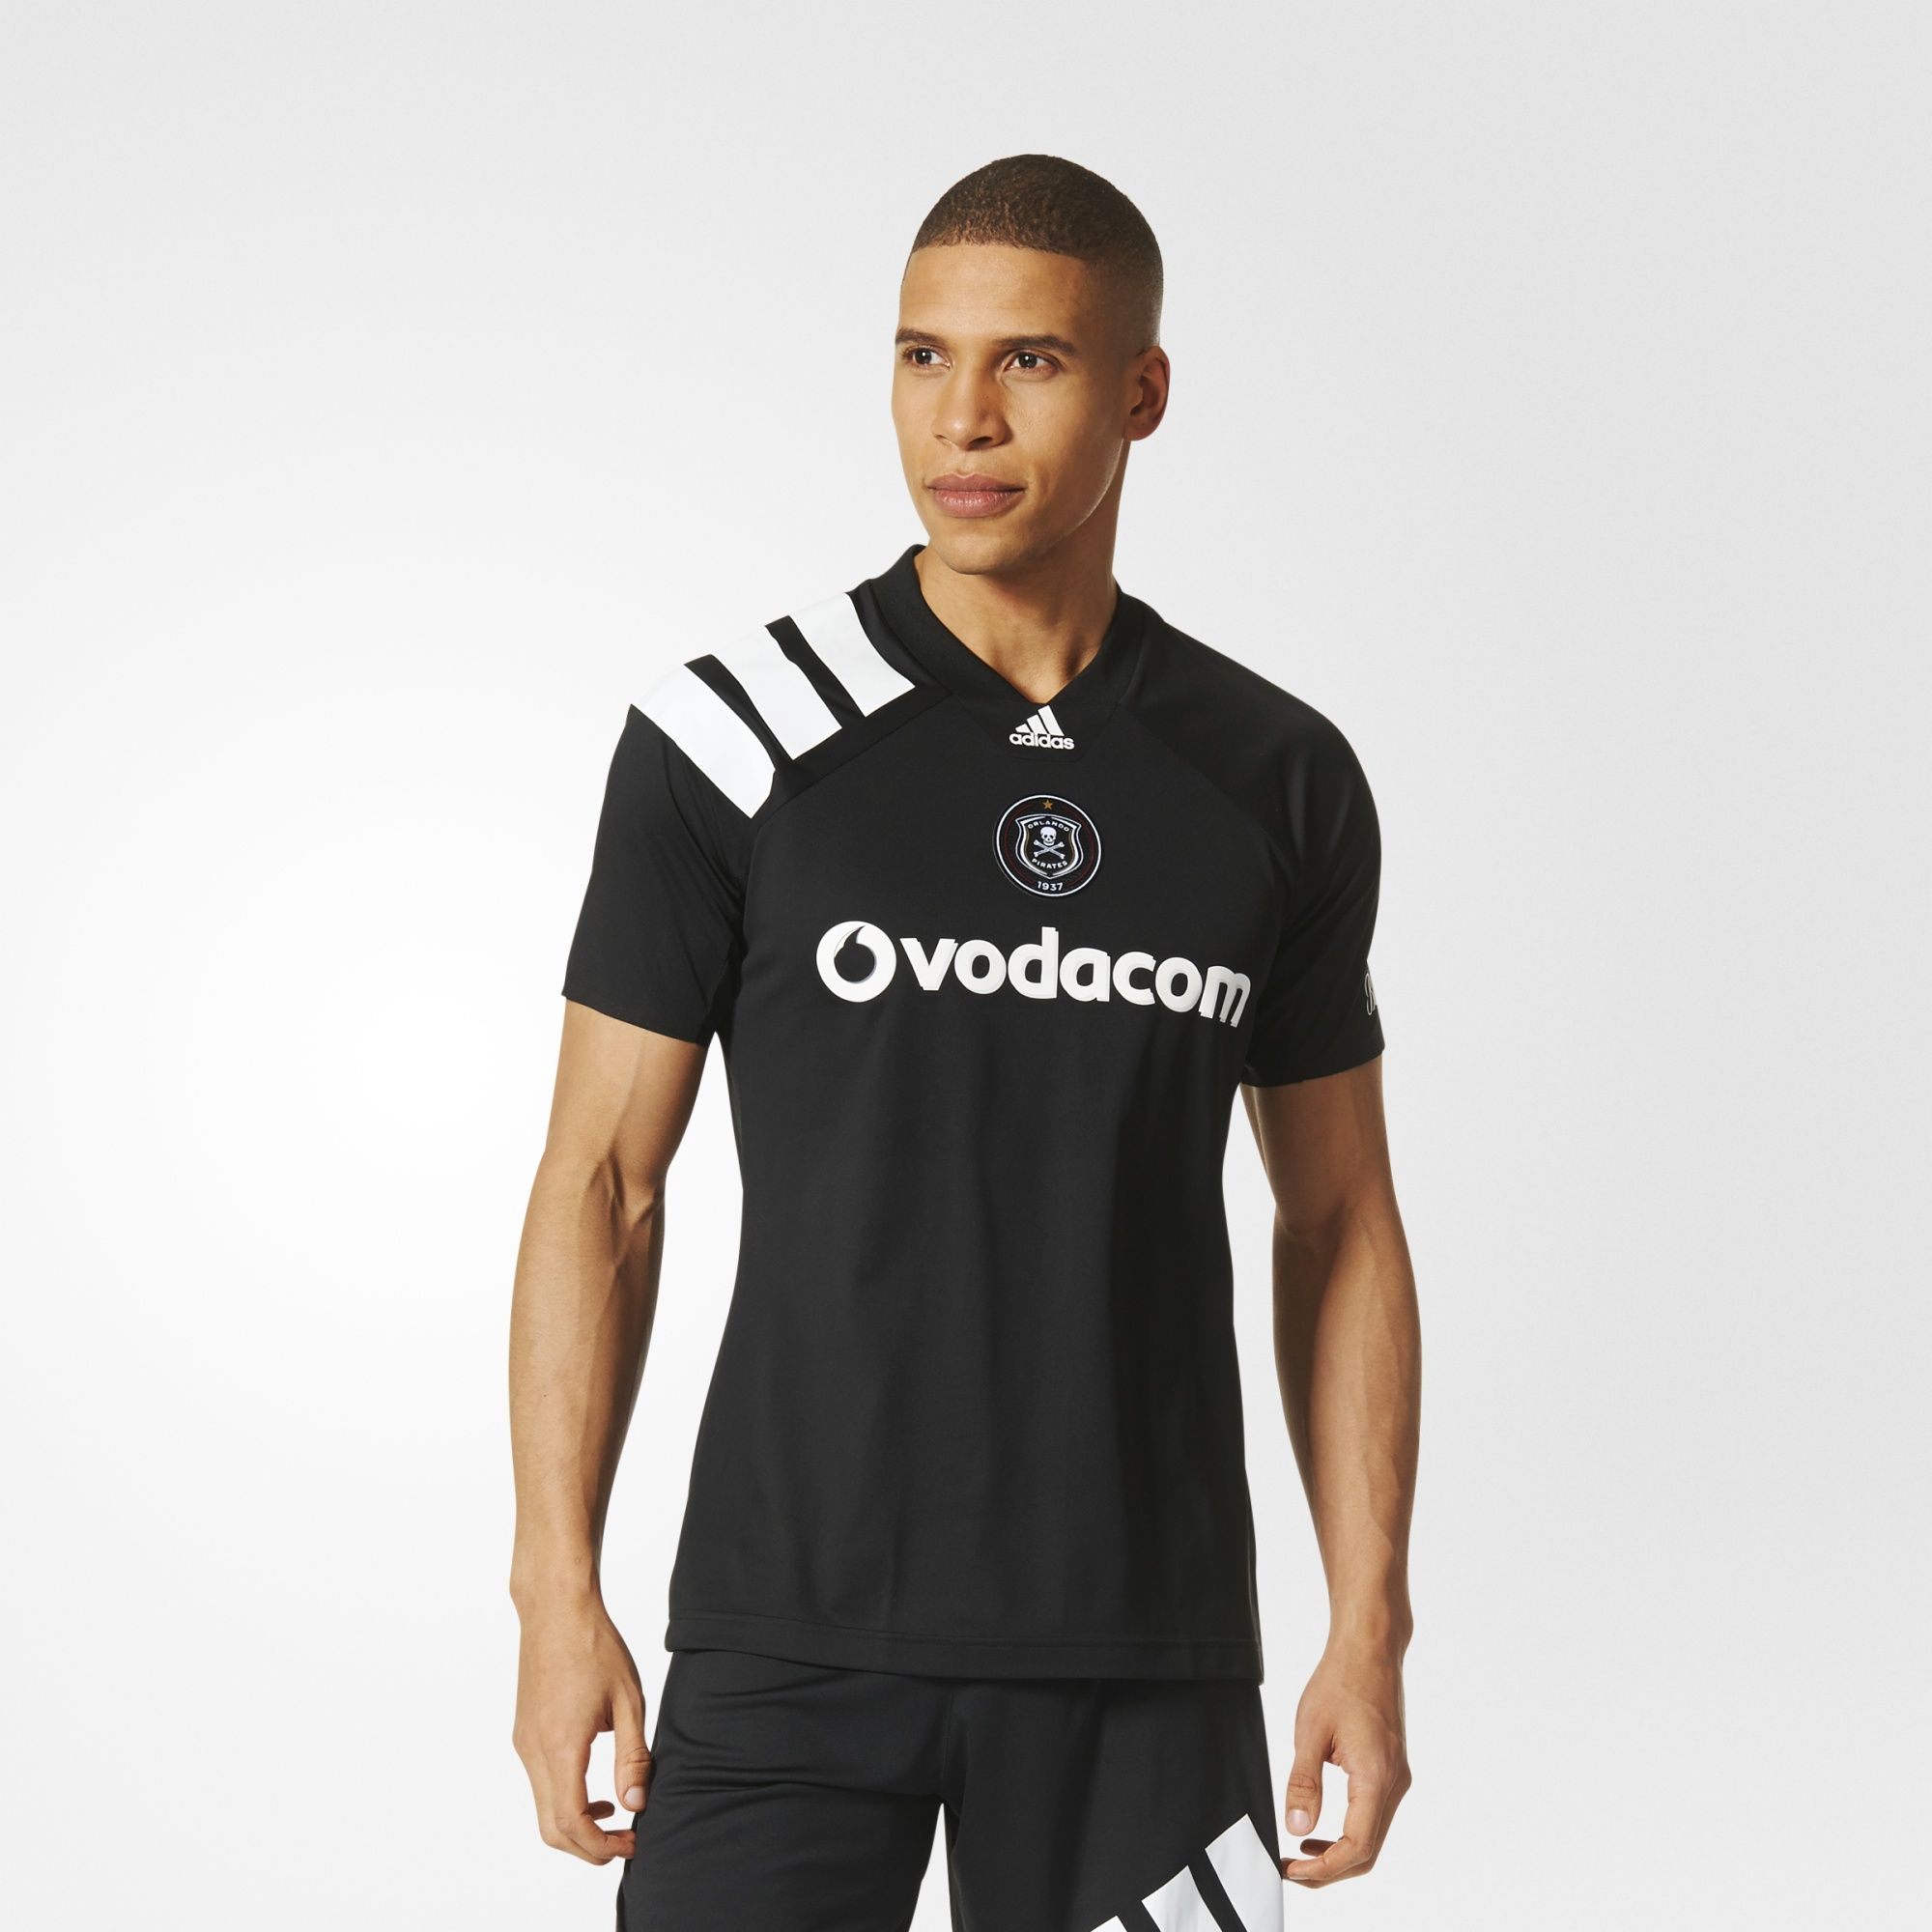 http://www.footballshirtculture.com/images/stories/orlando-pirates-2017-2018-adidas-home-kit/orlando_pirates_17_18_adidas_home_kit_a.jpg